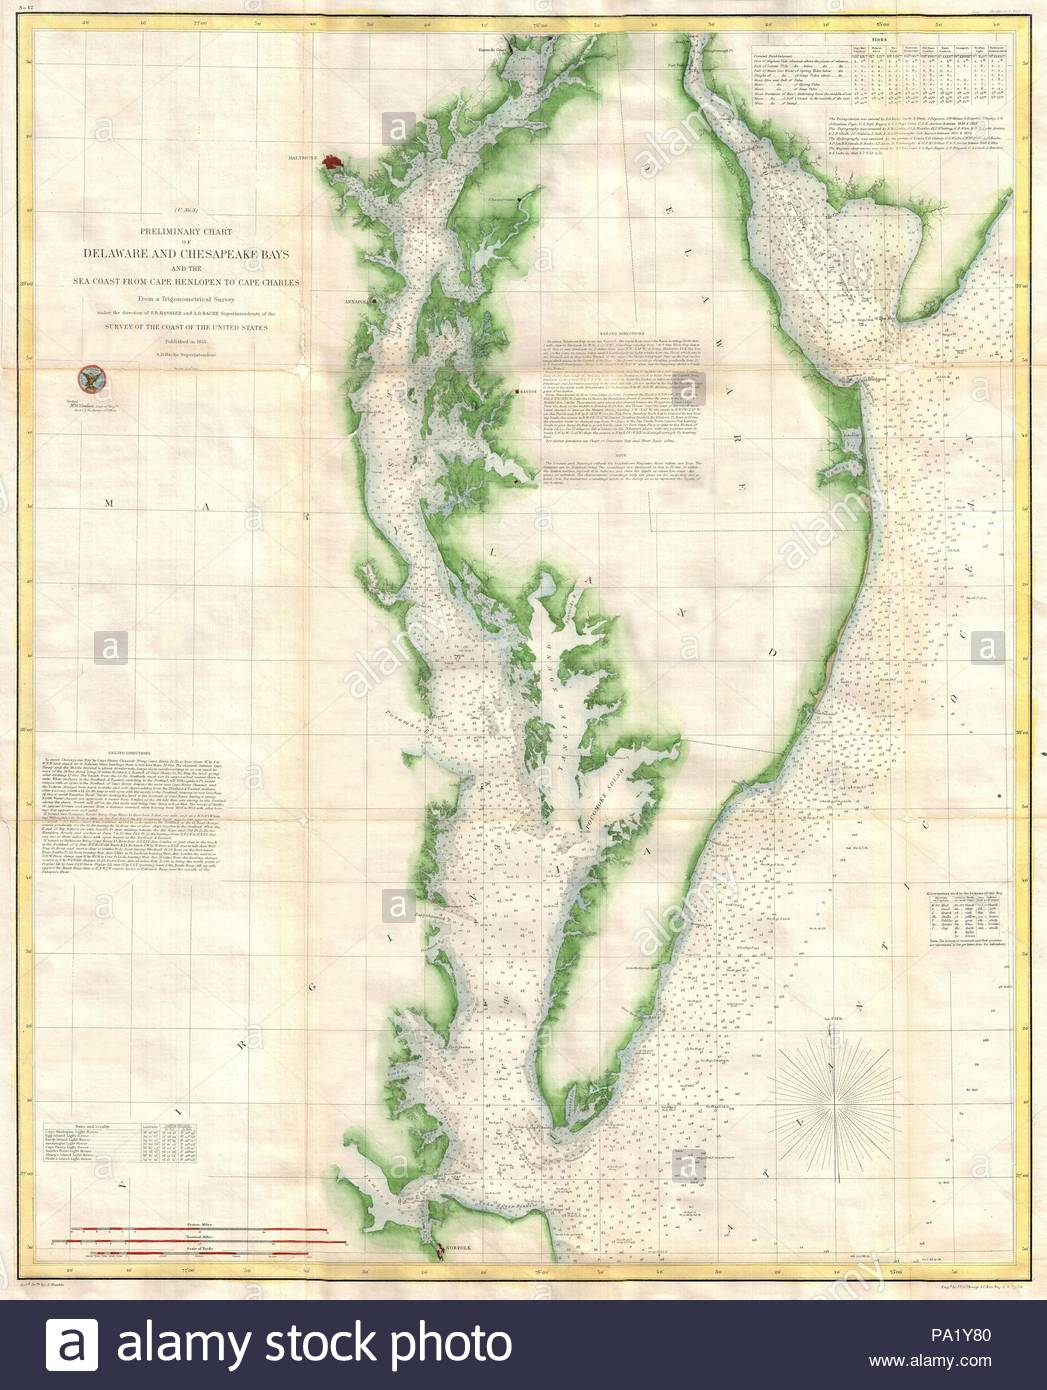 1855, U.S. Coast Survey Chart or Map of Chesapeake Bay and Delaware on